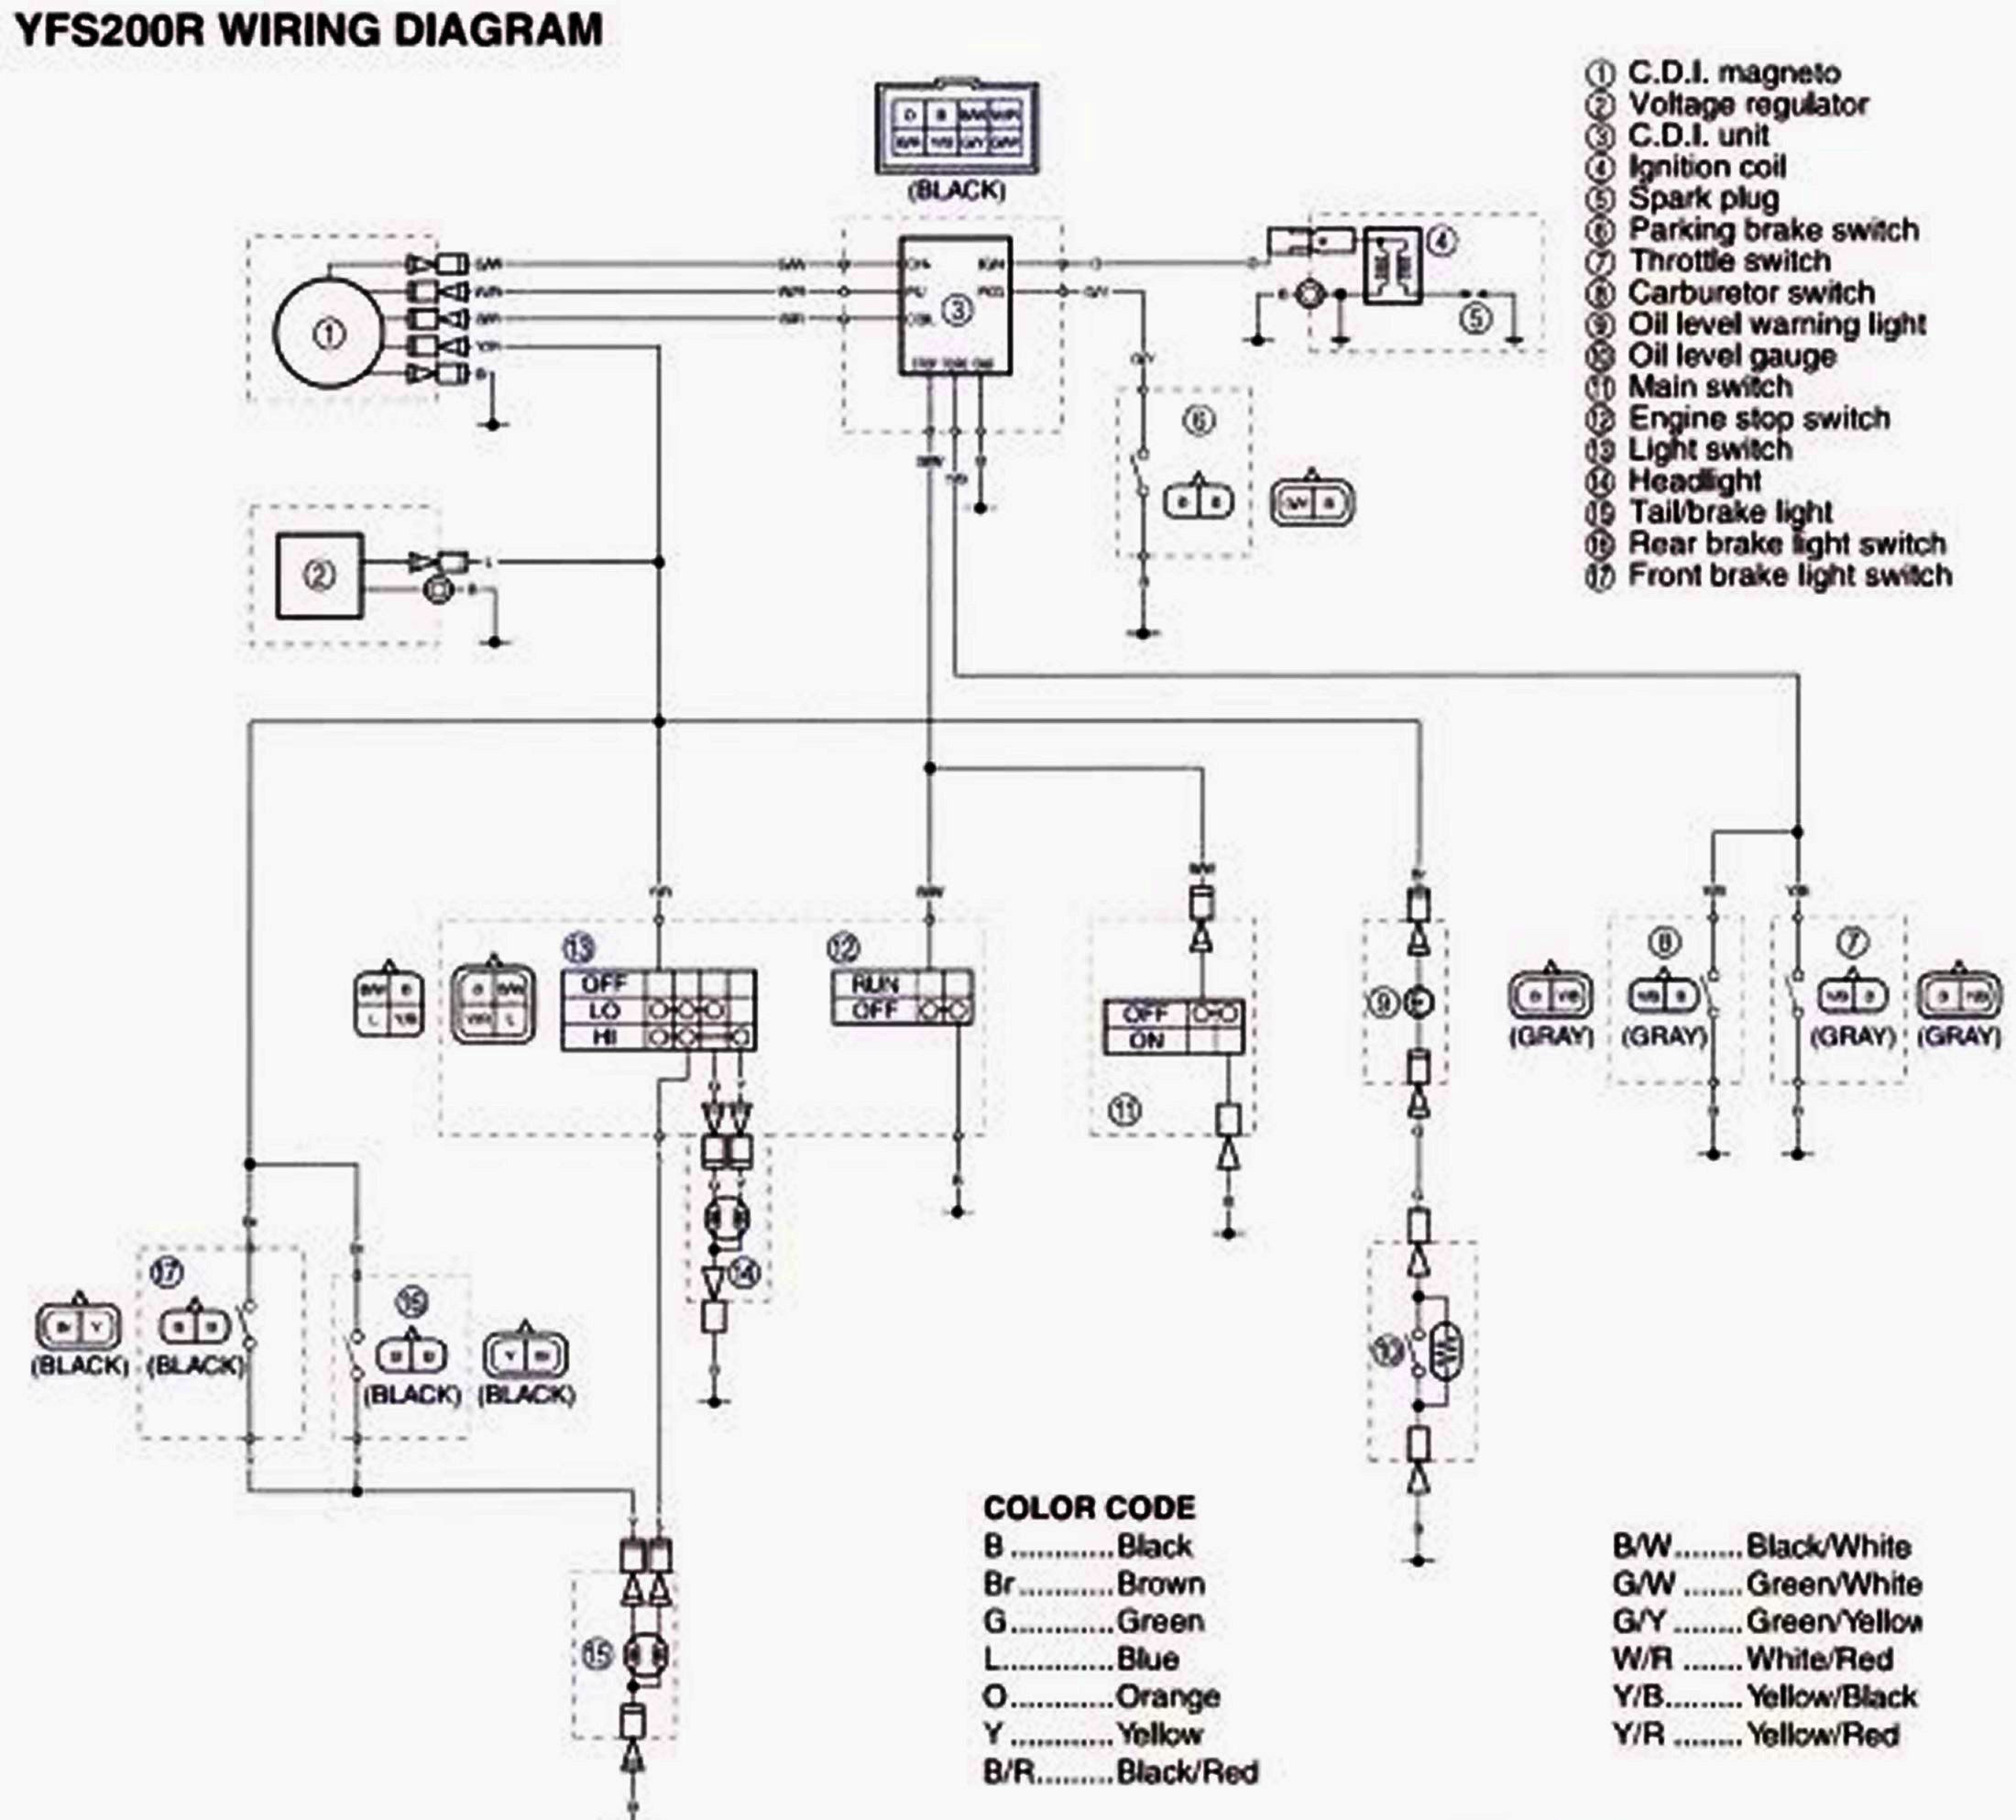 wiring diagram 2000 chevy s10